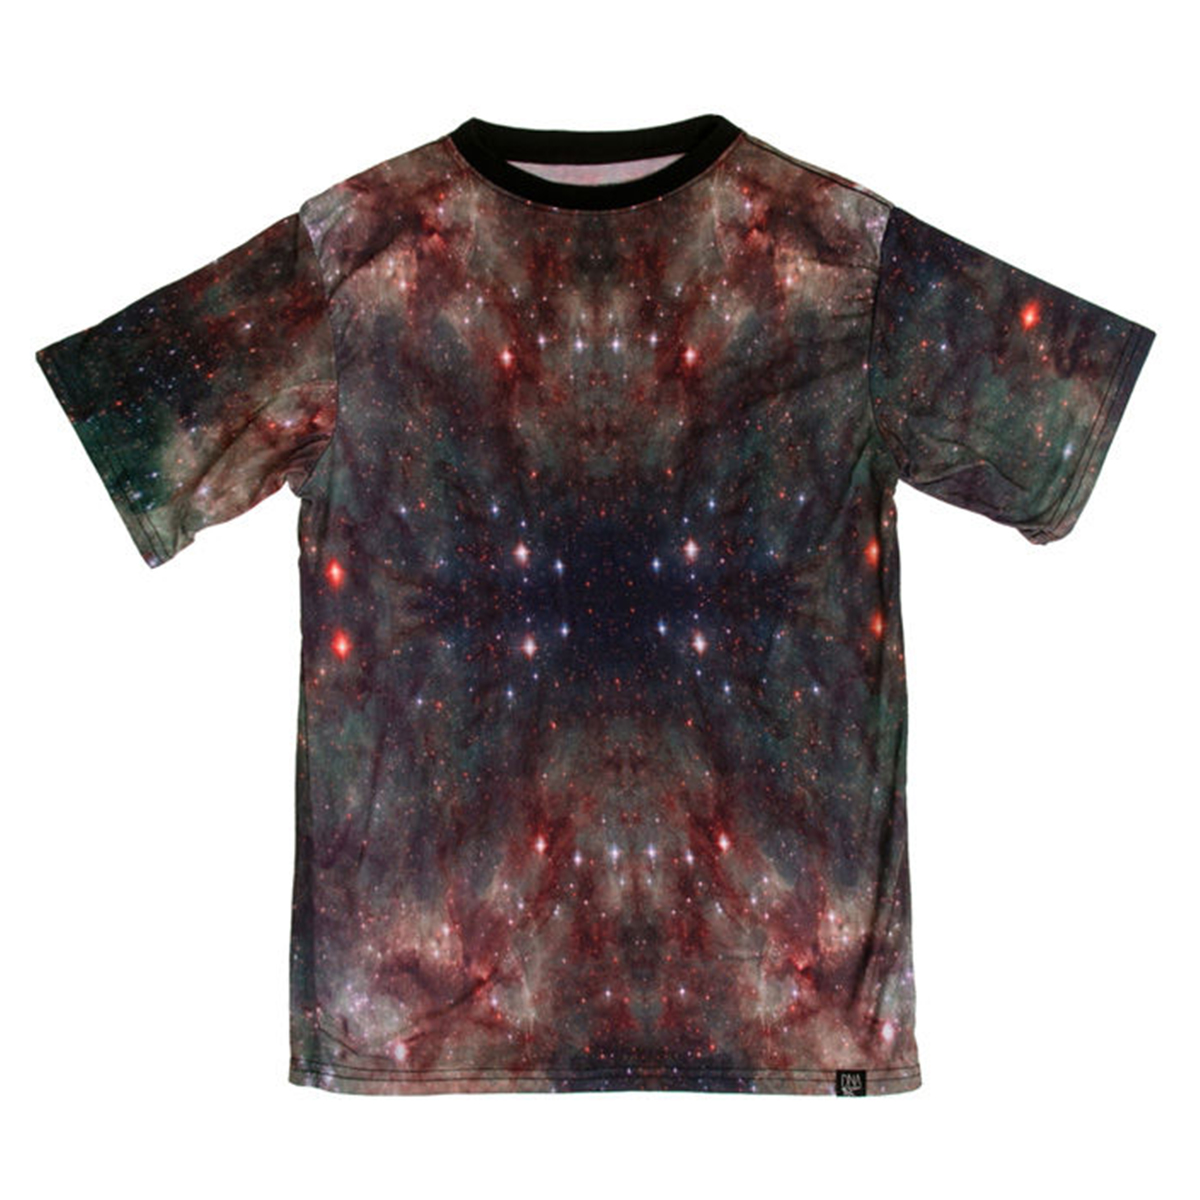 nebula haze in t shirt - photo #33